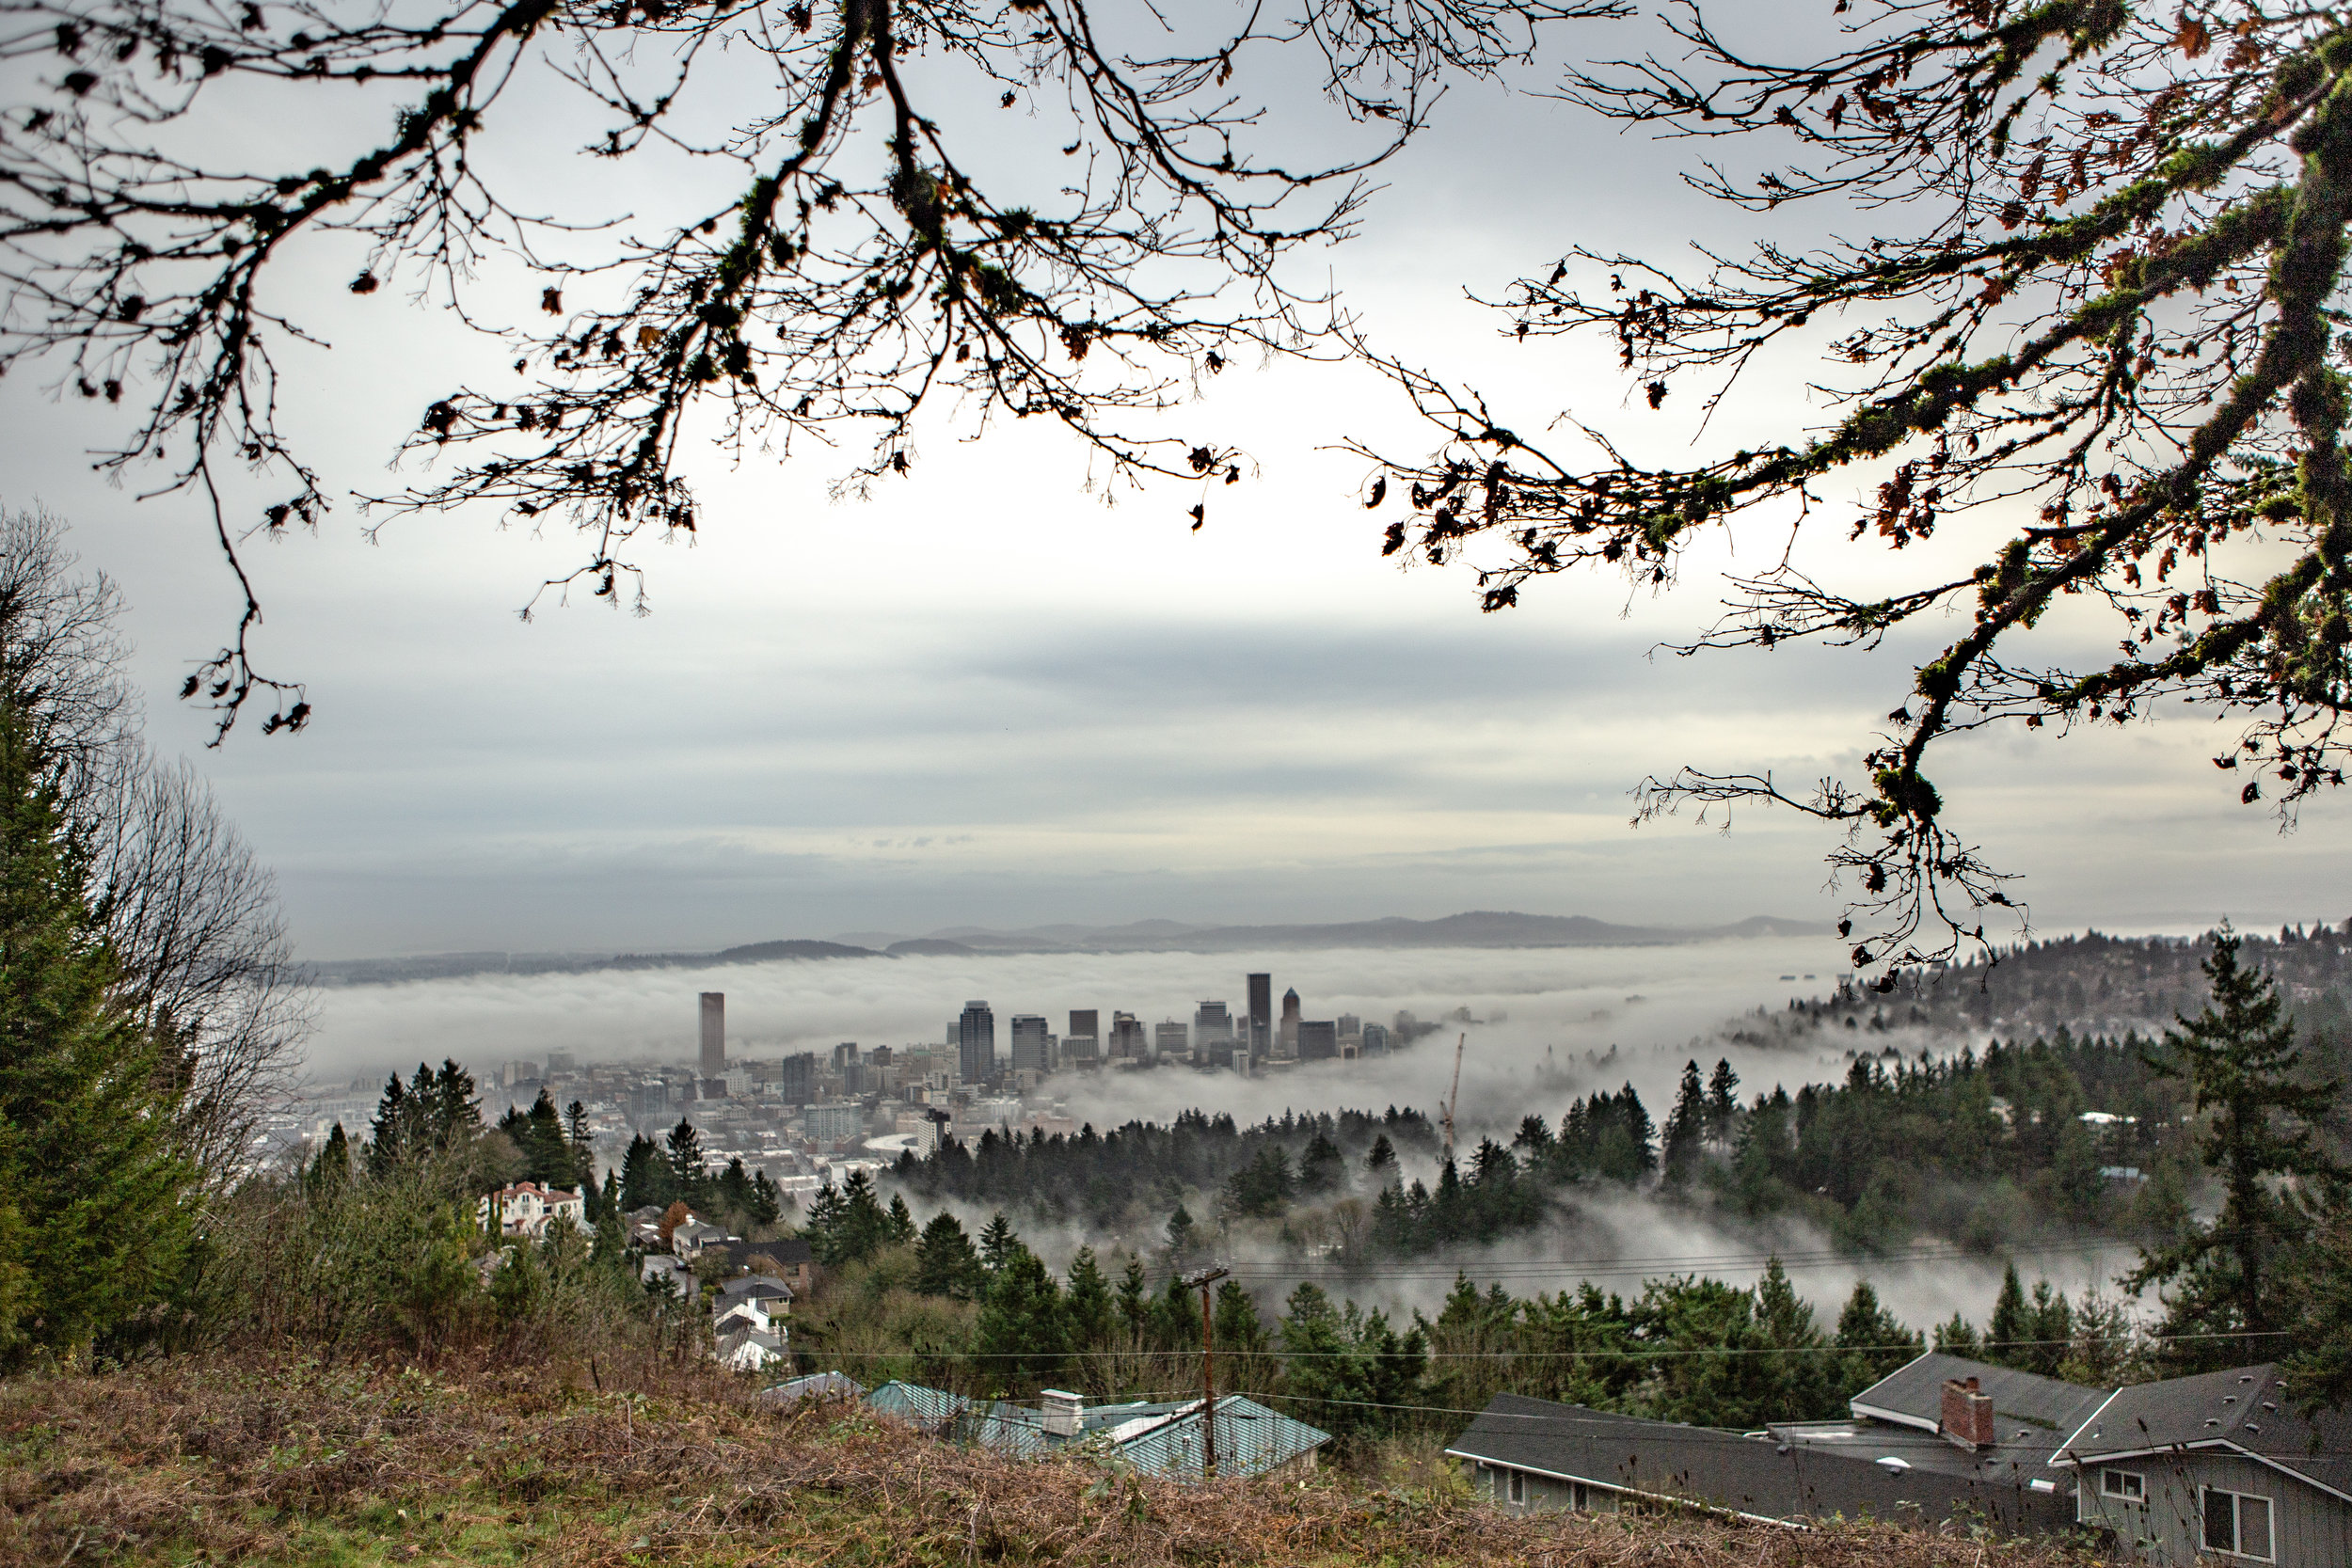 50 Shades of Gray:   A grey city encompassed with green charm, a view from a floating mansion in the hills.